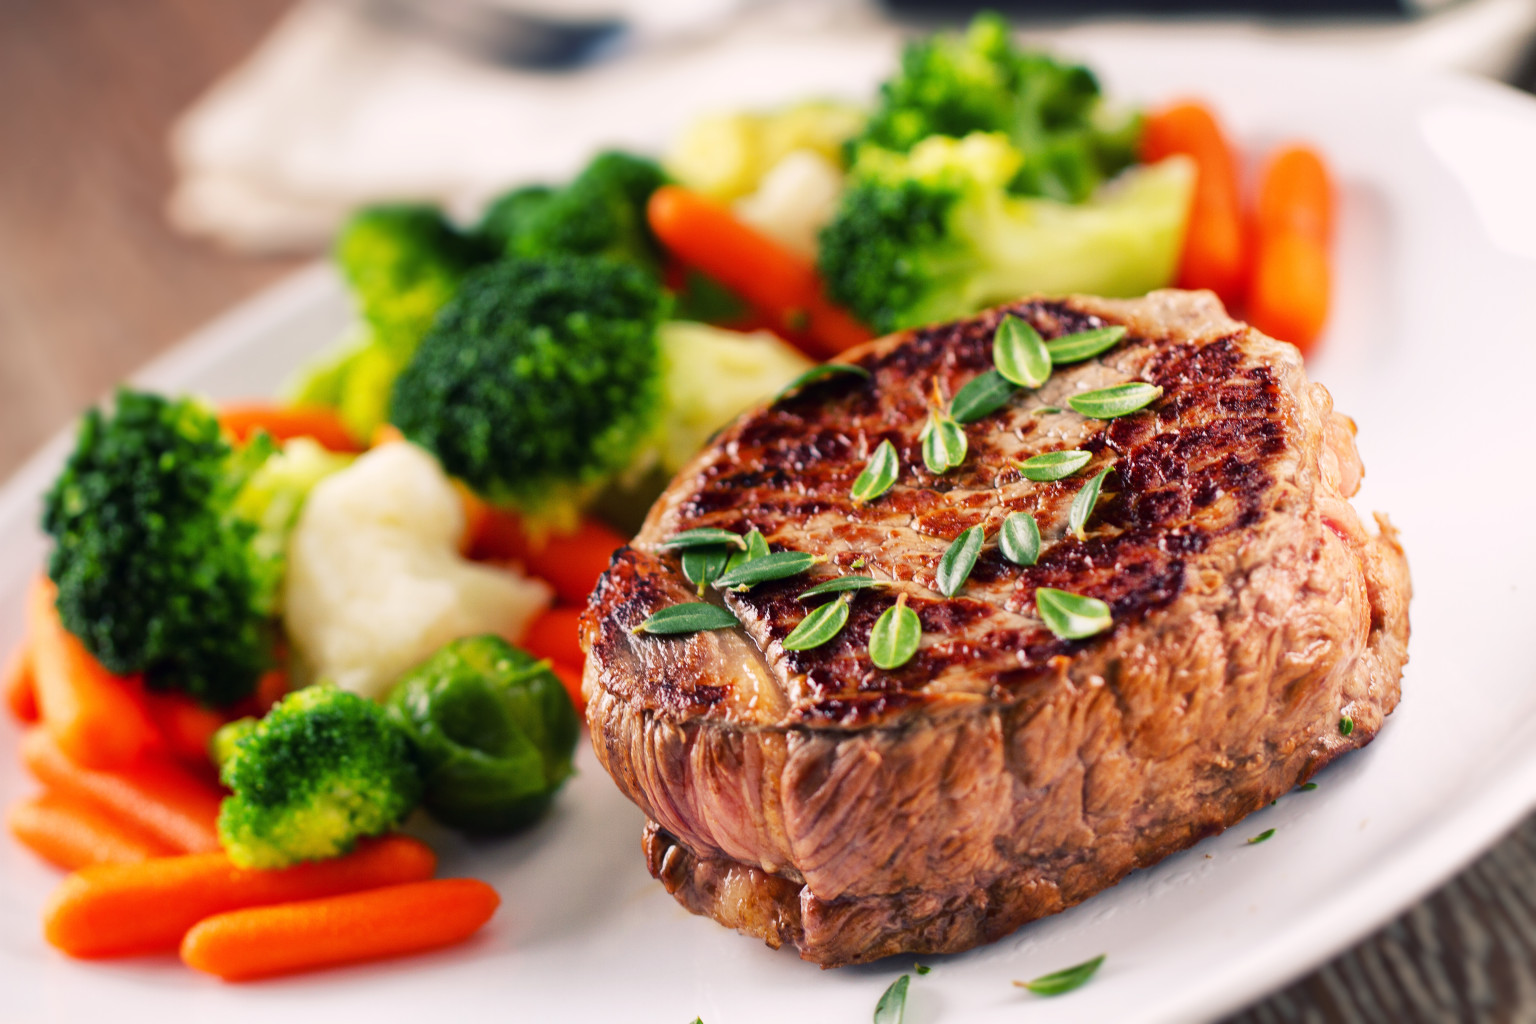 Scroll Down To Read : How To Eat Healthy Red Meat By Ama Ata Aidoo